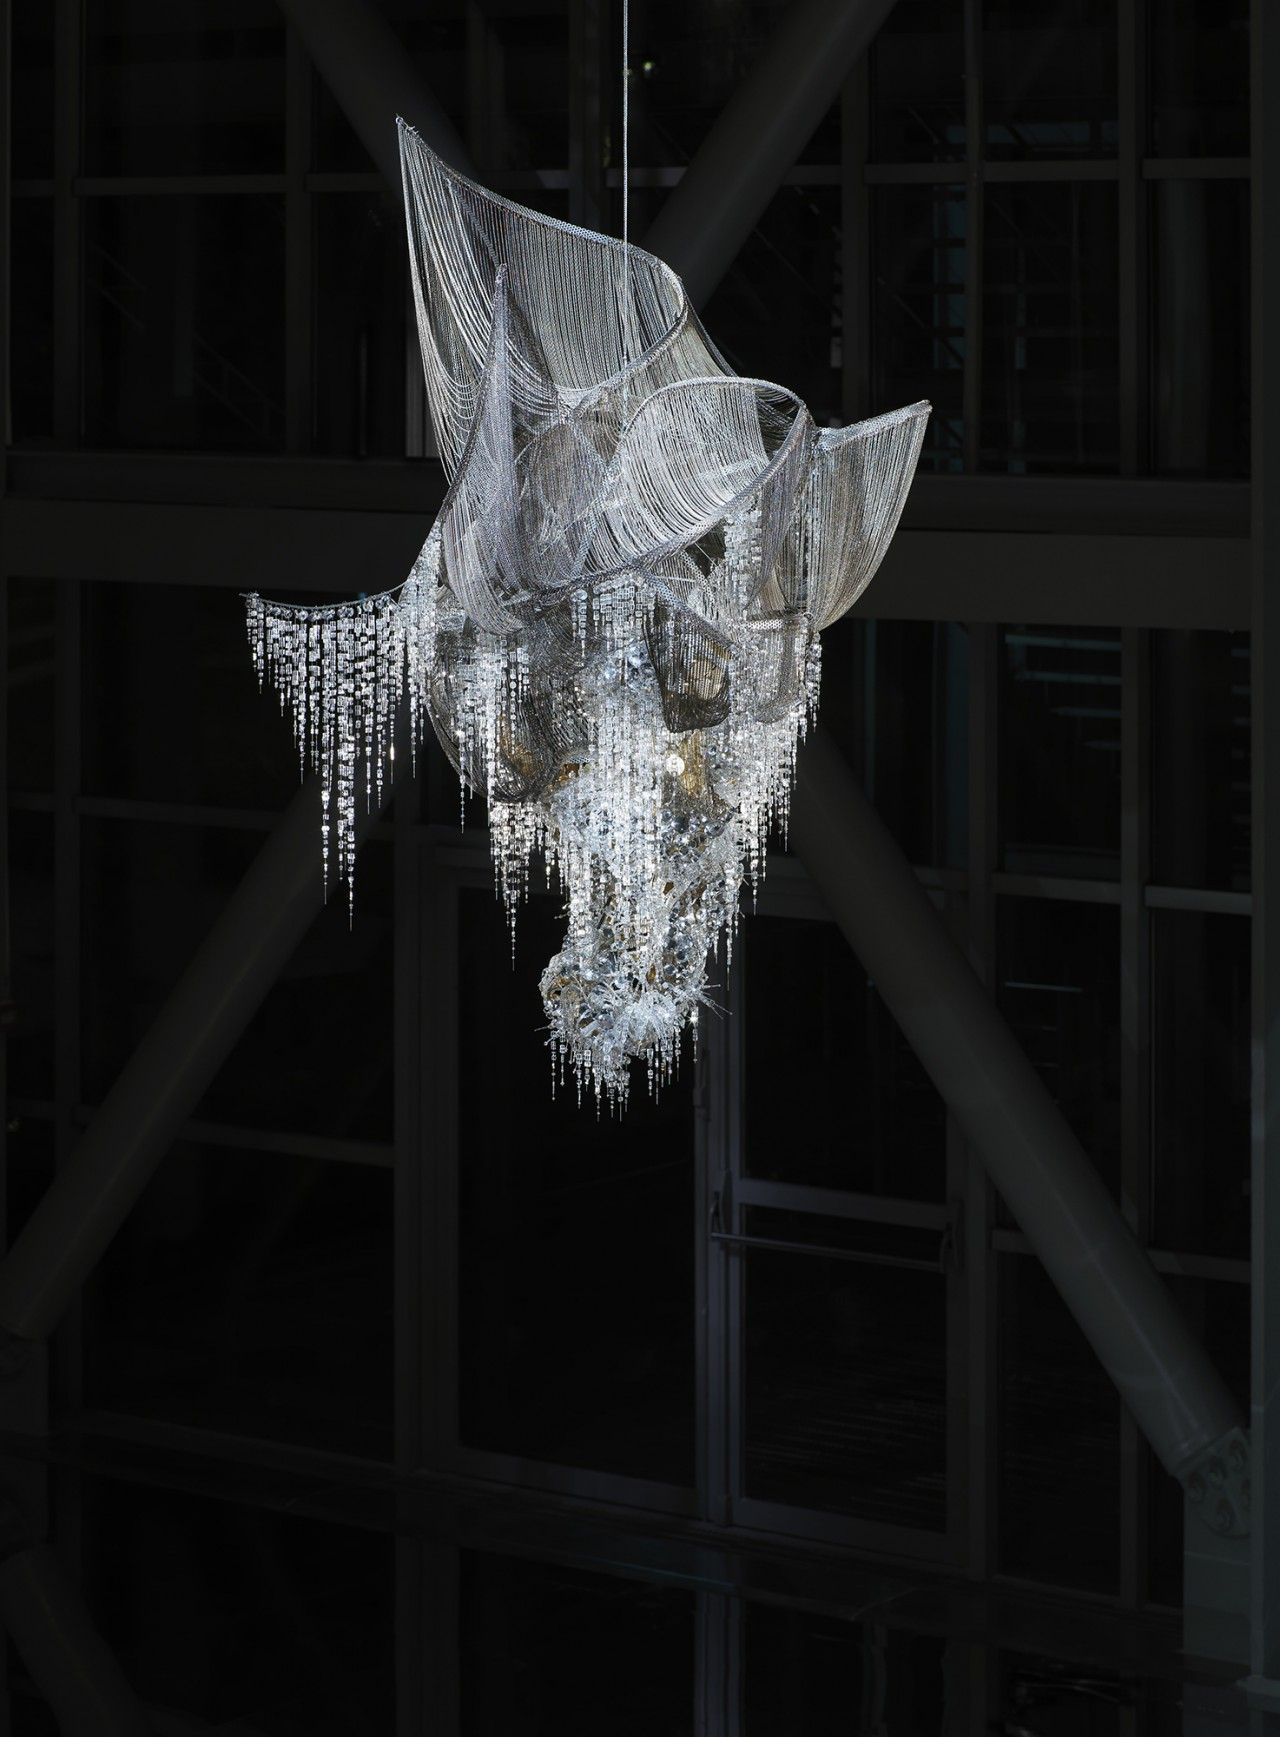 Patrick Gries — Lee Bul every new shadow